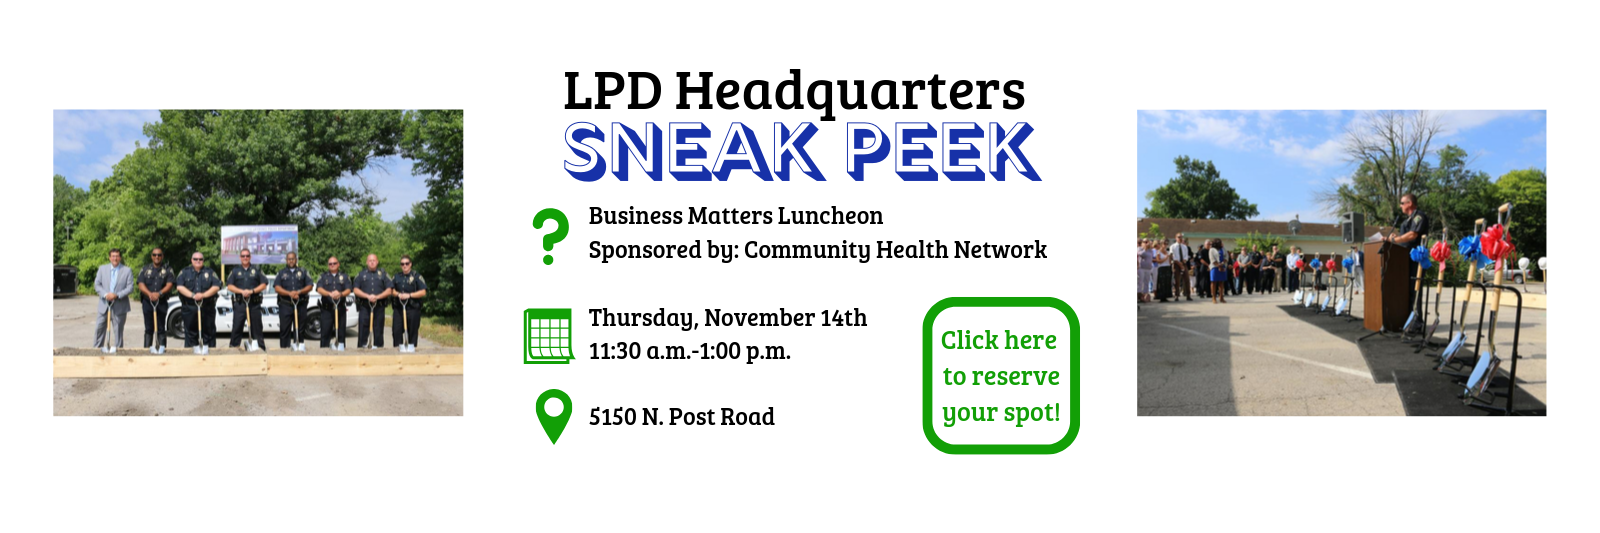 LPD-Headquarters-Sneak-Peek-(1).png